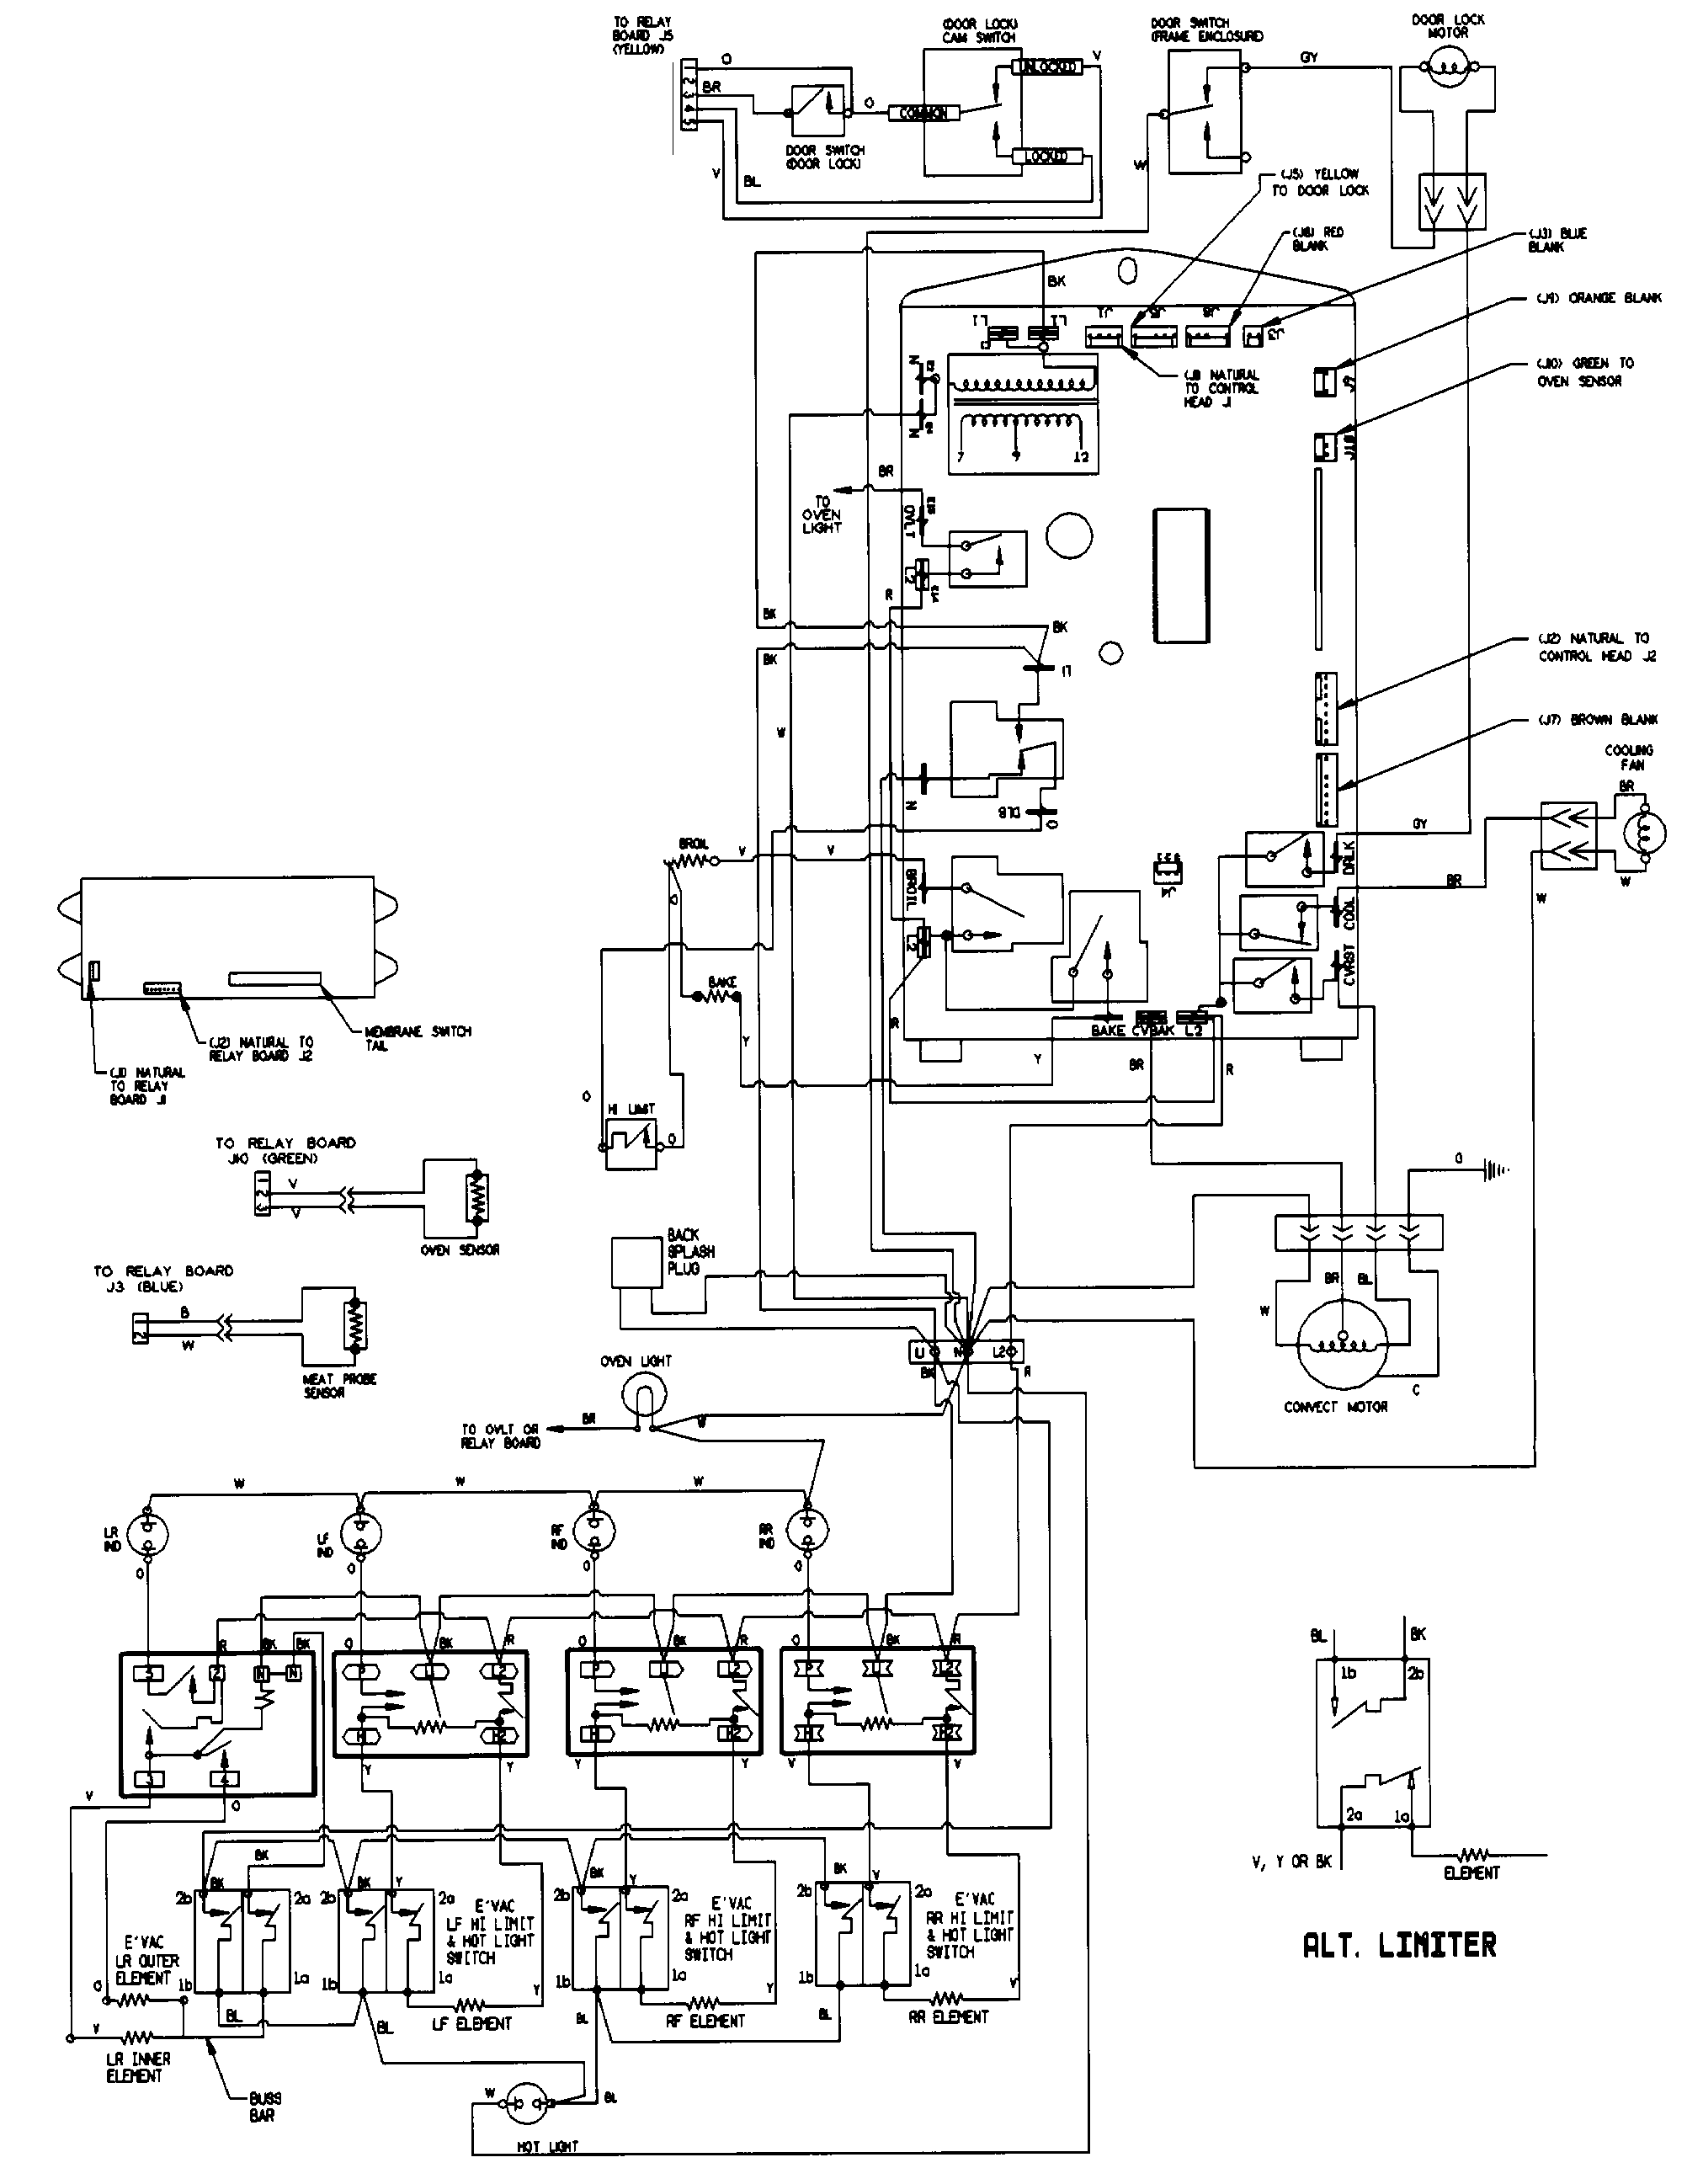 Sauna Wiring Diagram As Well Wood Stove Blower Motor Wiring Diagram